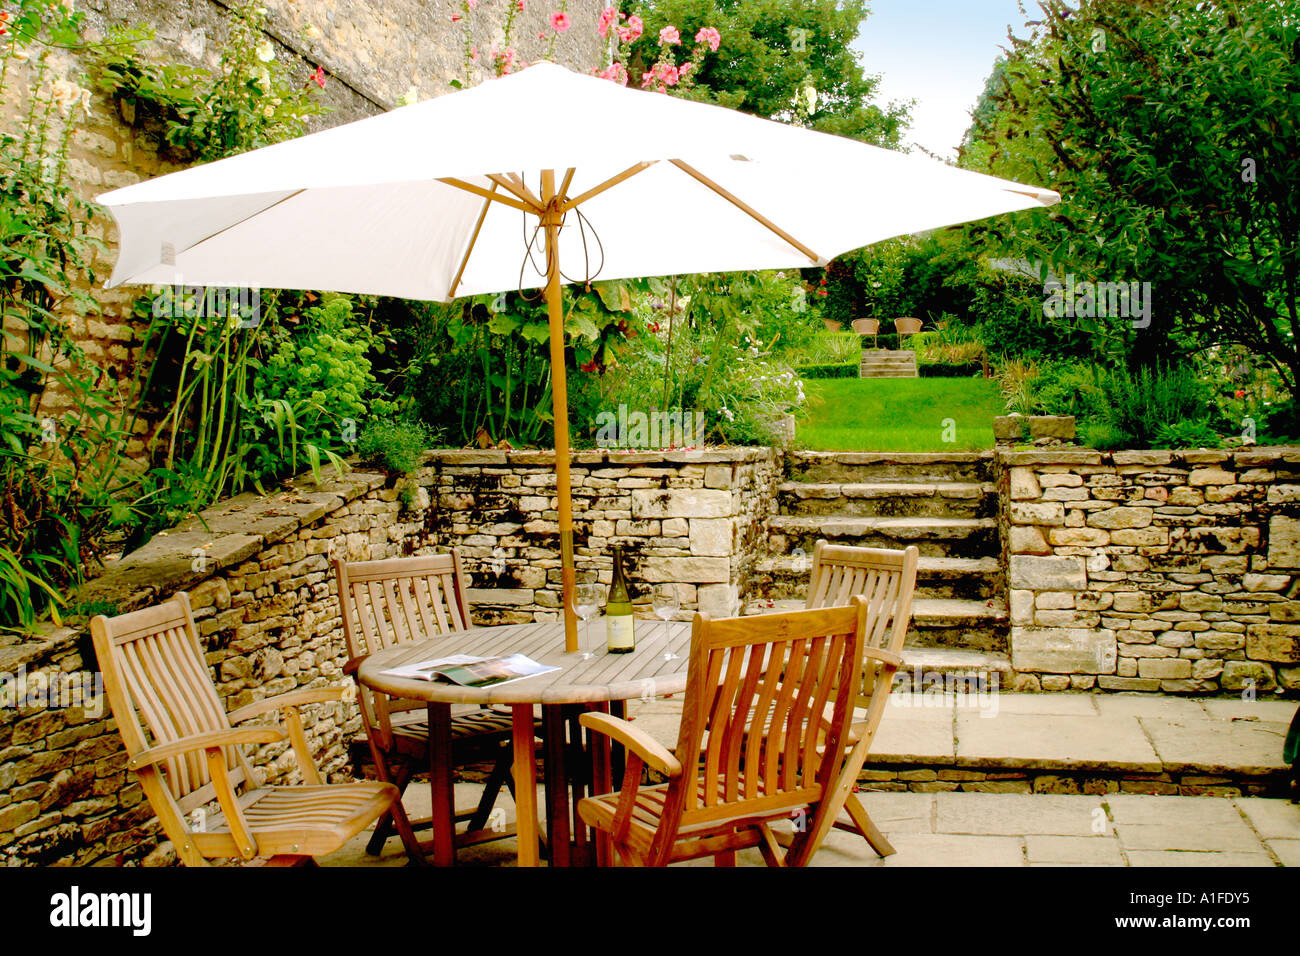 Patio Terrace Garden Table Chairs And Parasol Sun Shade